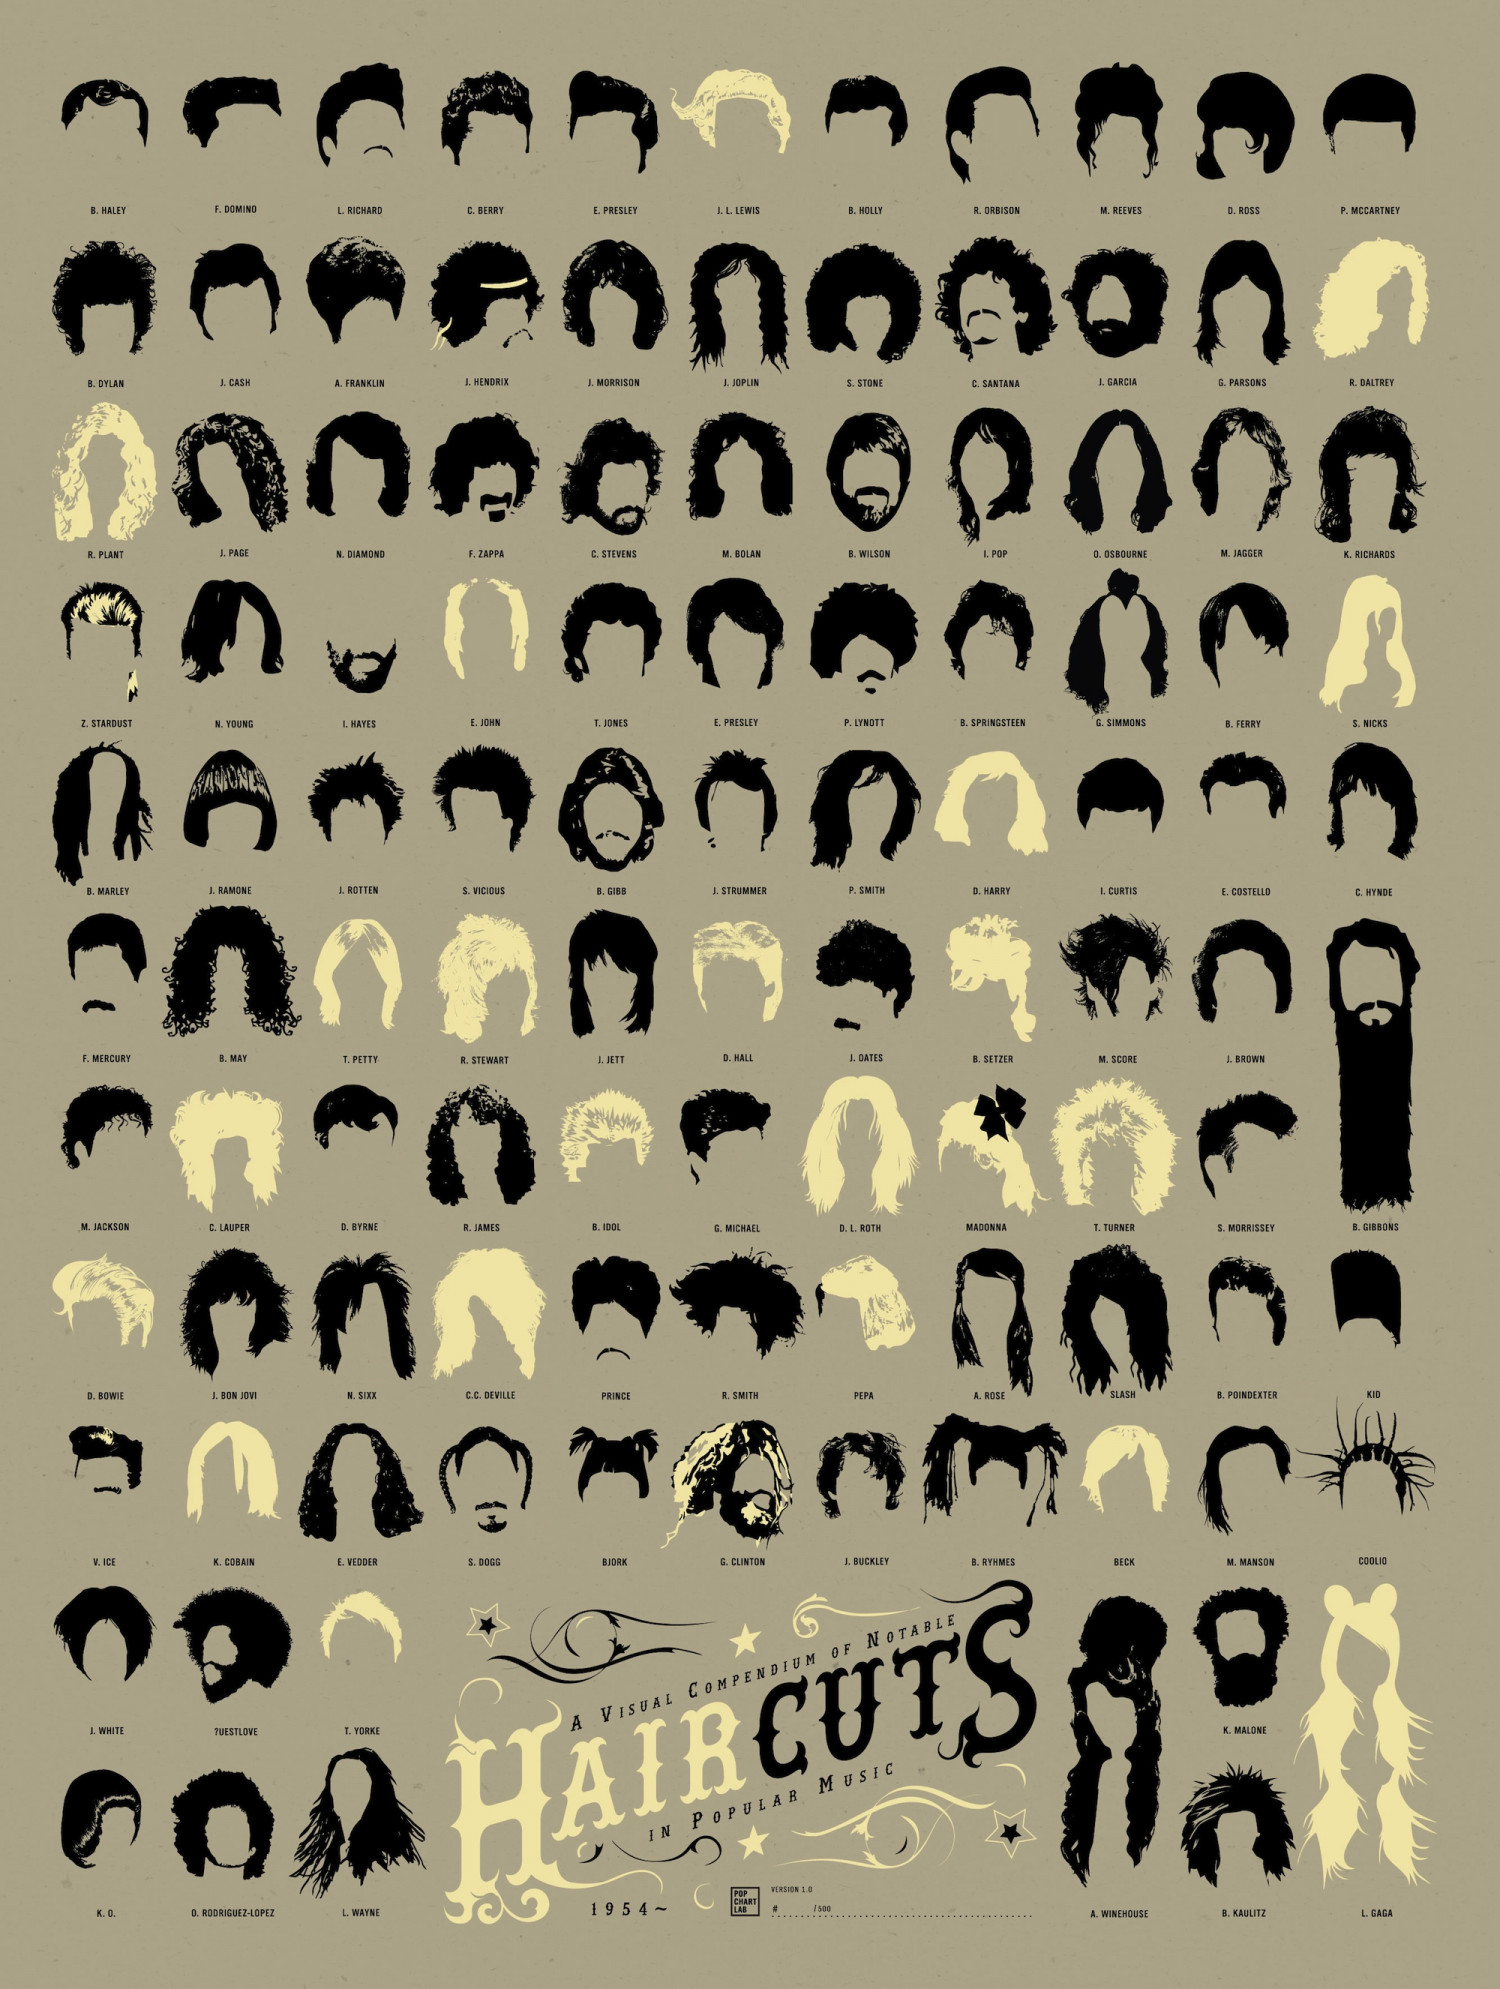 A Visual Compendium of Haircuts in Popular Music Infographic